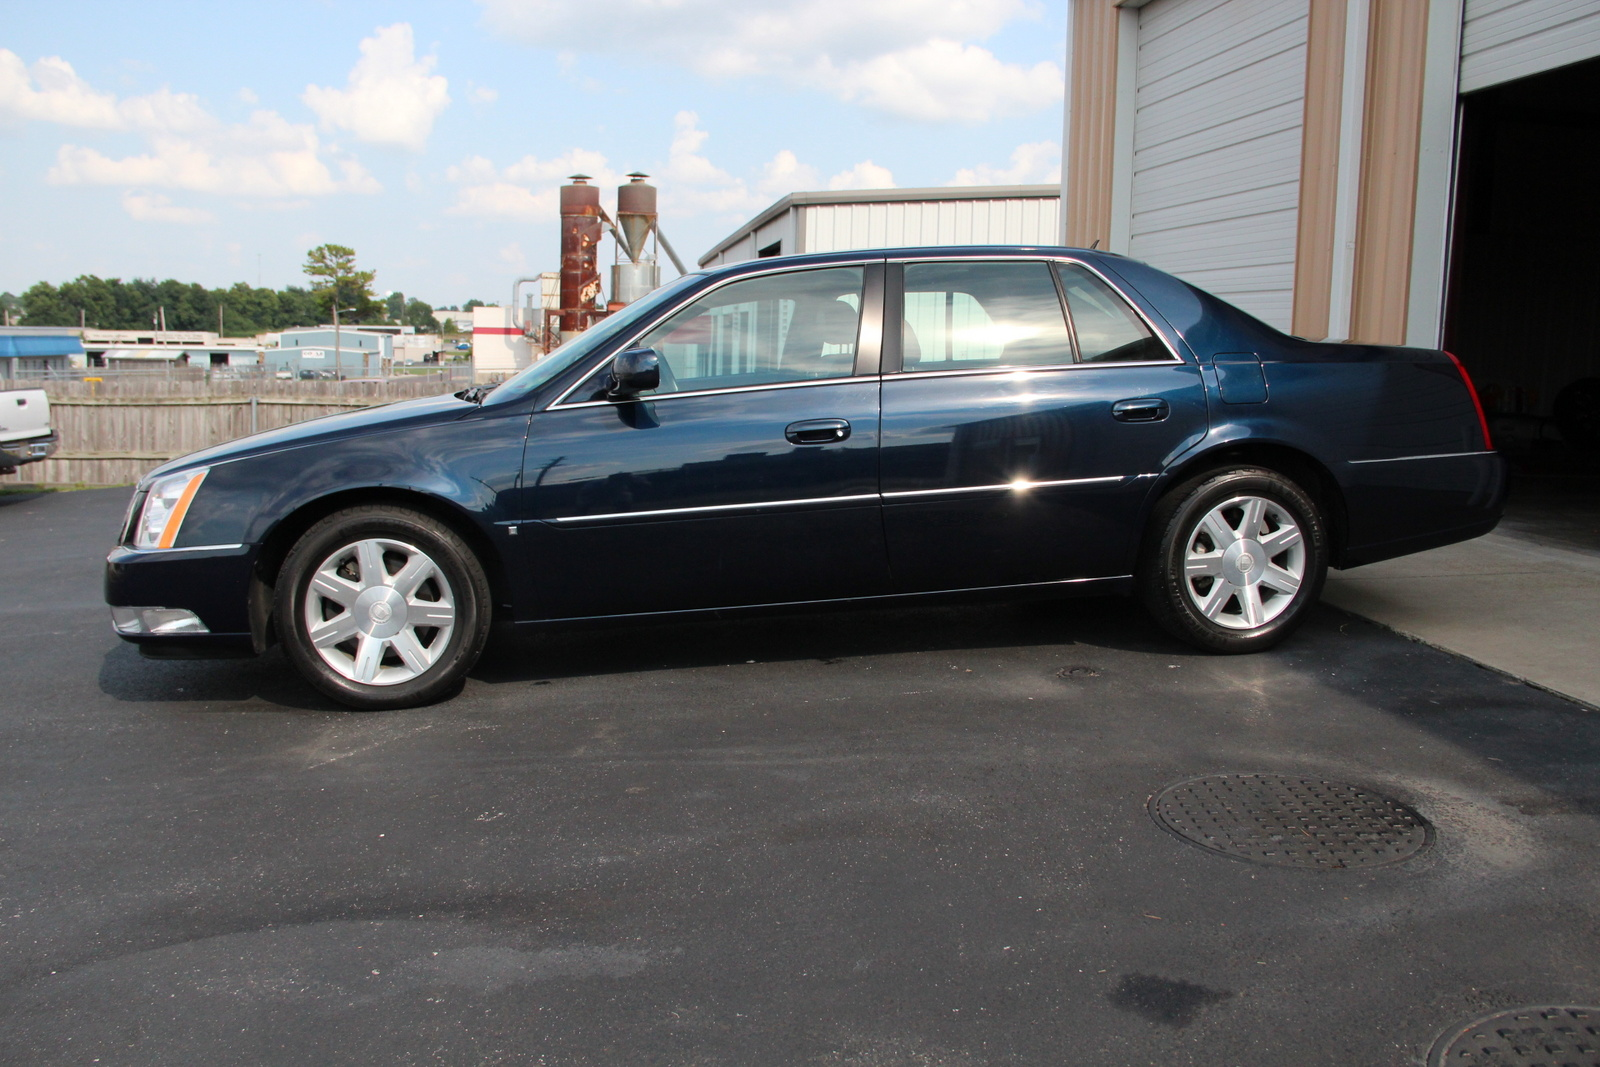 Battery Location On 2006 Cadillac Dts, Battery, Free ...